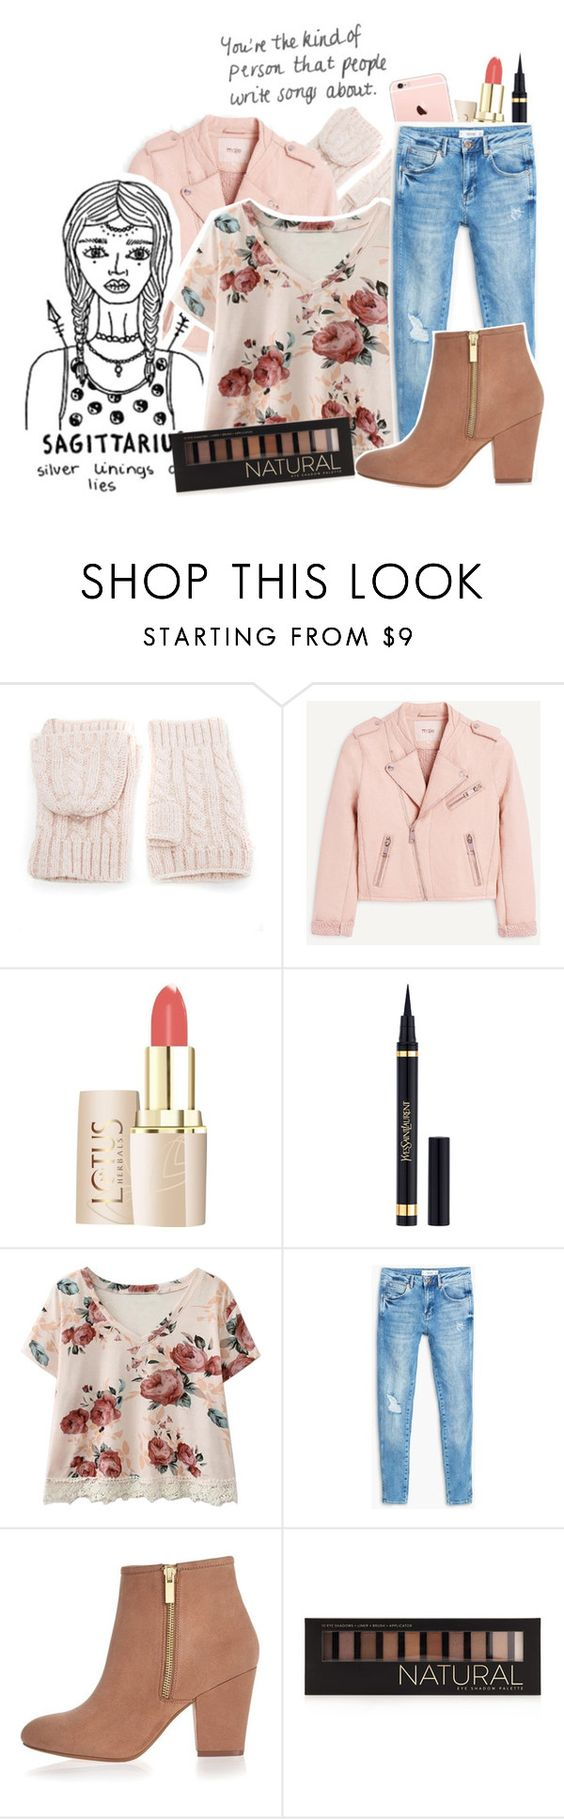 """""""Sagittarius"""" by superhannah572 ❤ liked on Polyvore featuring WithChic, Yves Saint Laurent, MANGO, River Island and Forever 21"""